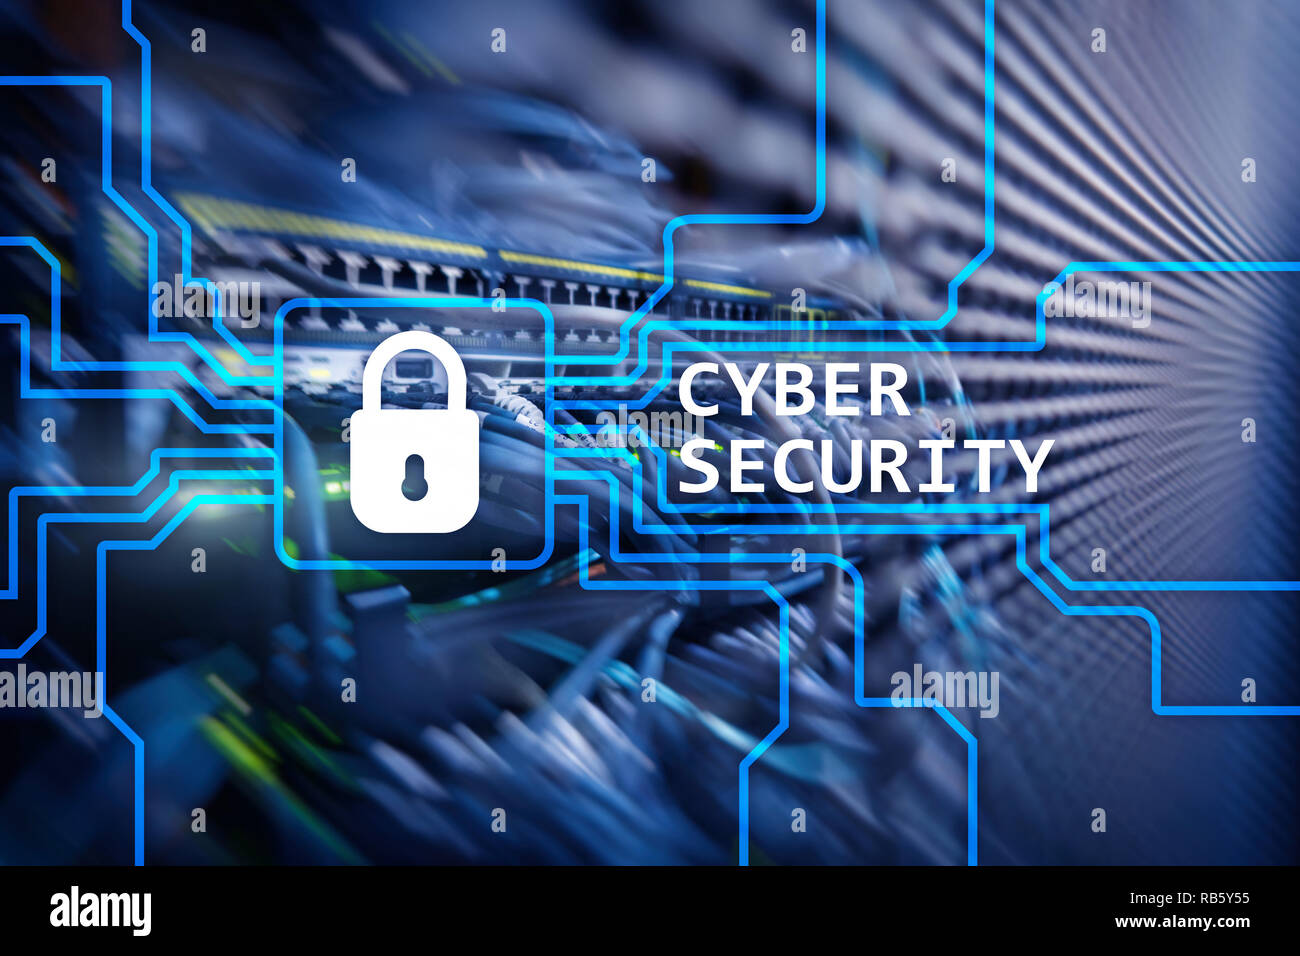 Cyber security, information privacy and data protection concept on server room background - Stock Image